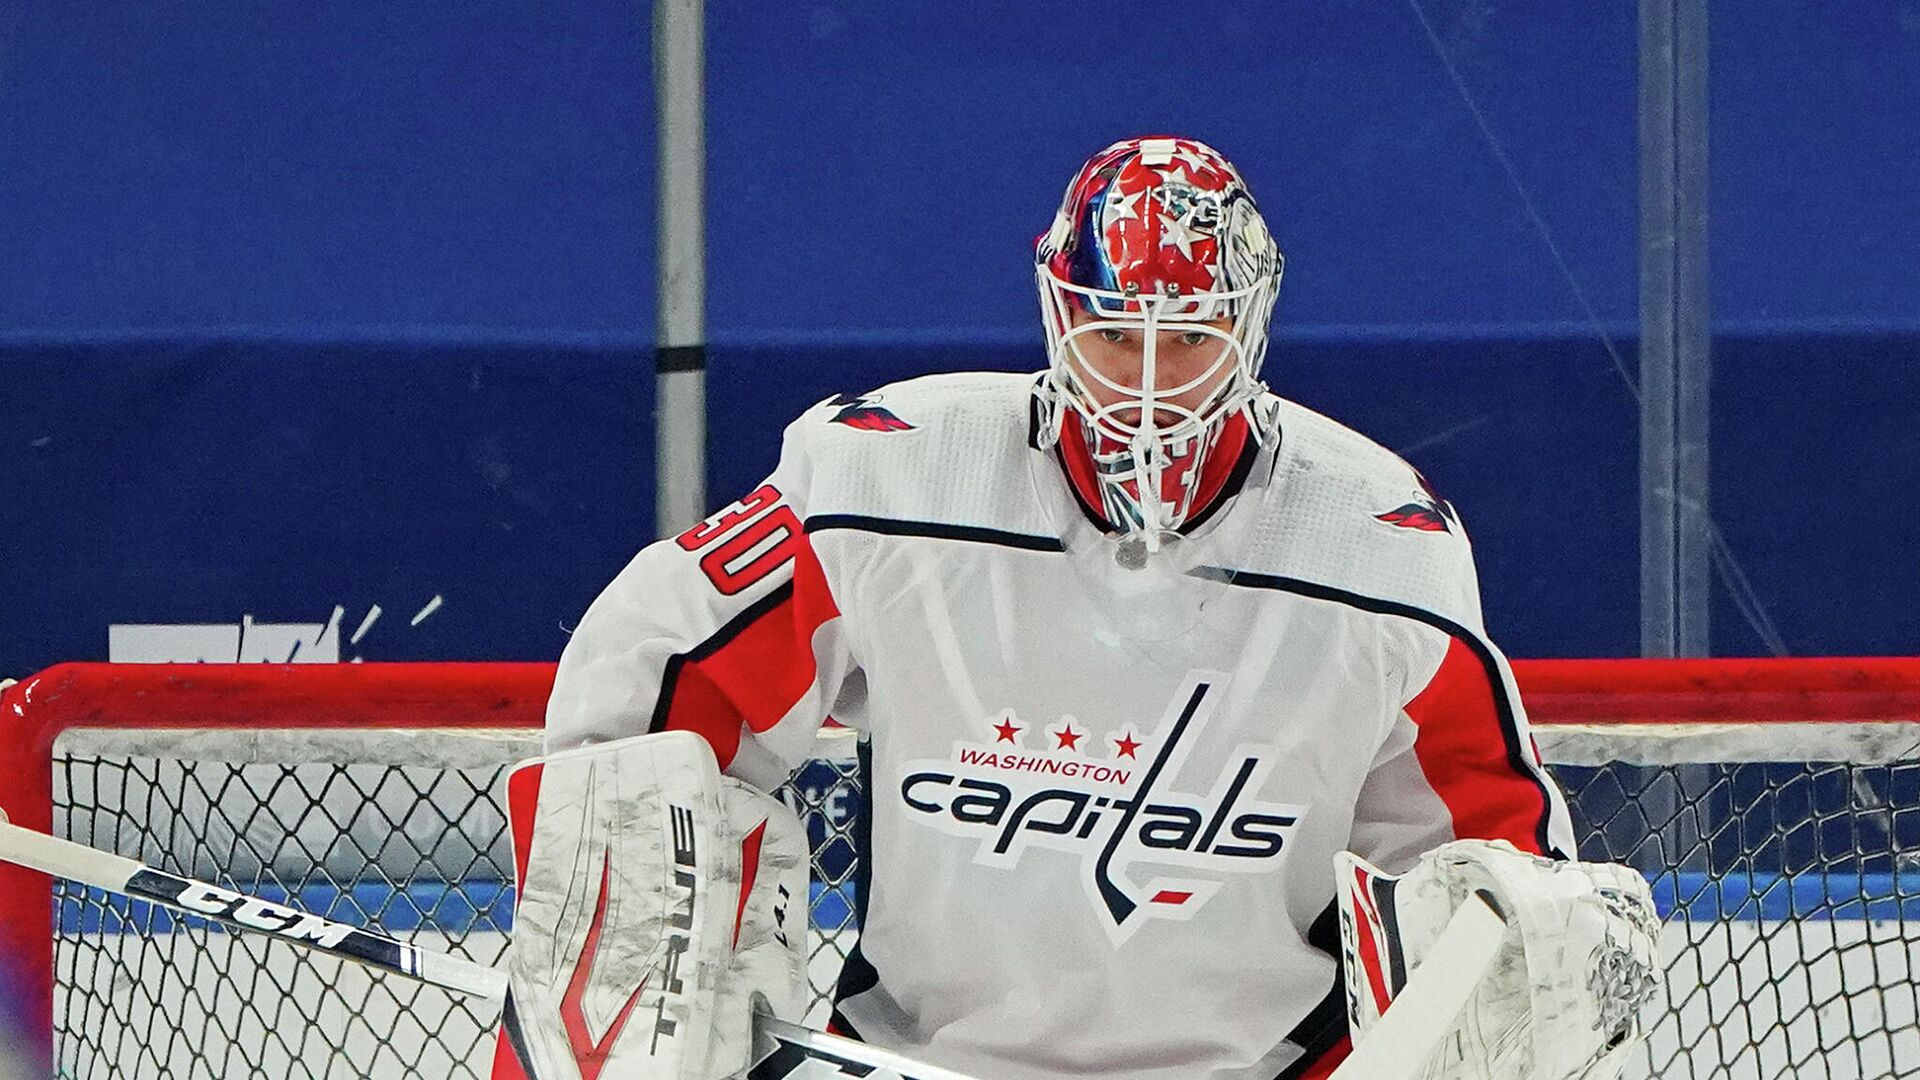 BUFFALO, NY - JANUARY 14: Ilya Samsonov #30 of the Washington Capitals before the game against the Buffalo Sabres at KeyBank Center on January 14 , 2021 in Buffalo, New York.   Kevin Hoffman/Getty Images/AFP (Photo by Kevin Hoffman / GETTY IMAGES NORTH AMERICA / Getty Images via AFP) - РИА Новости, 1920, 28.02.2021